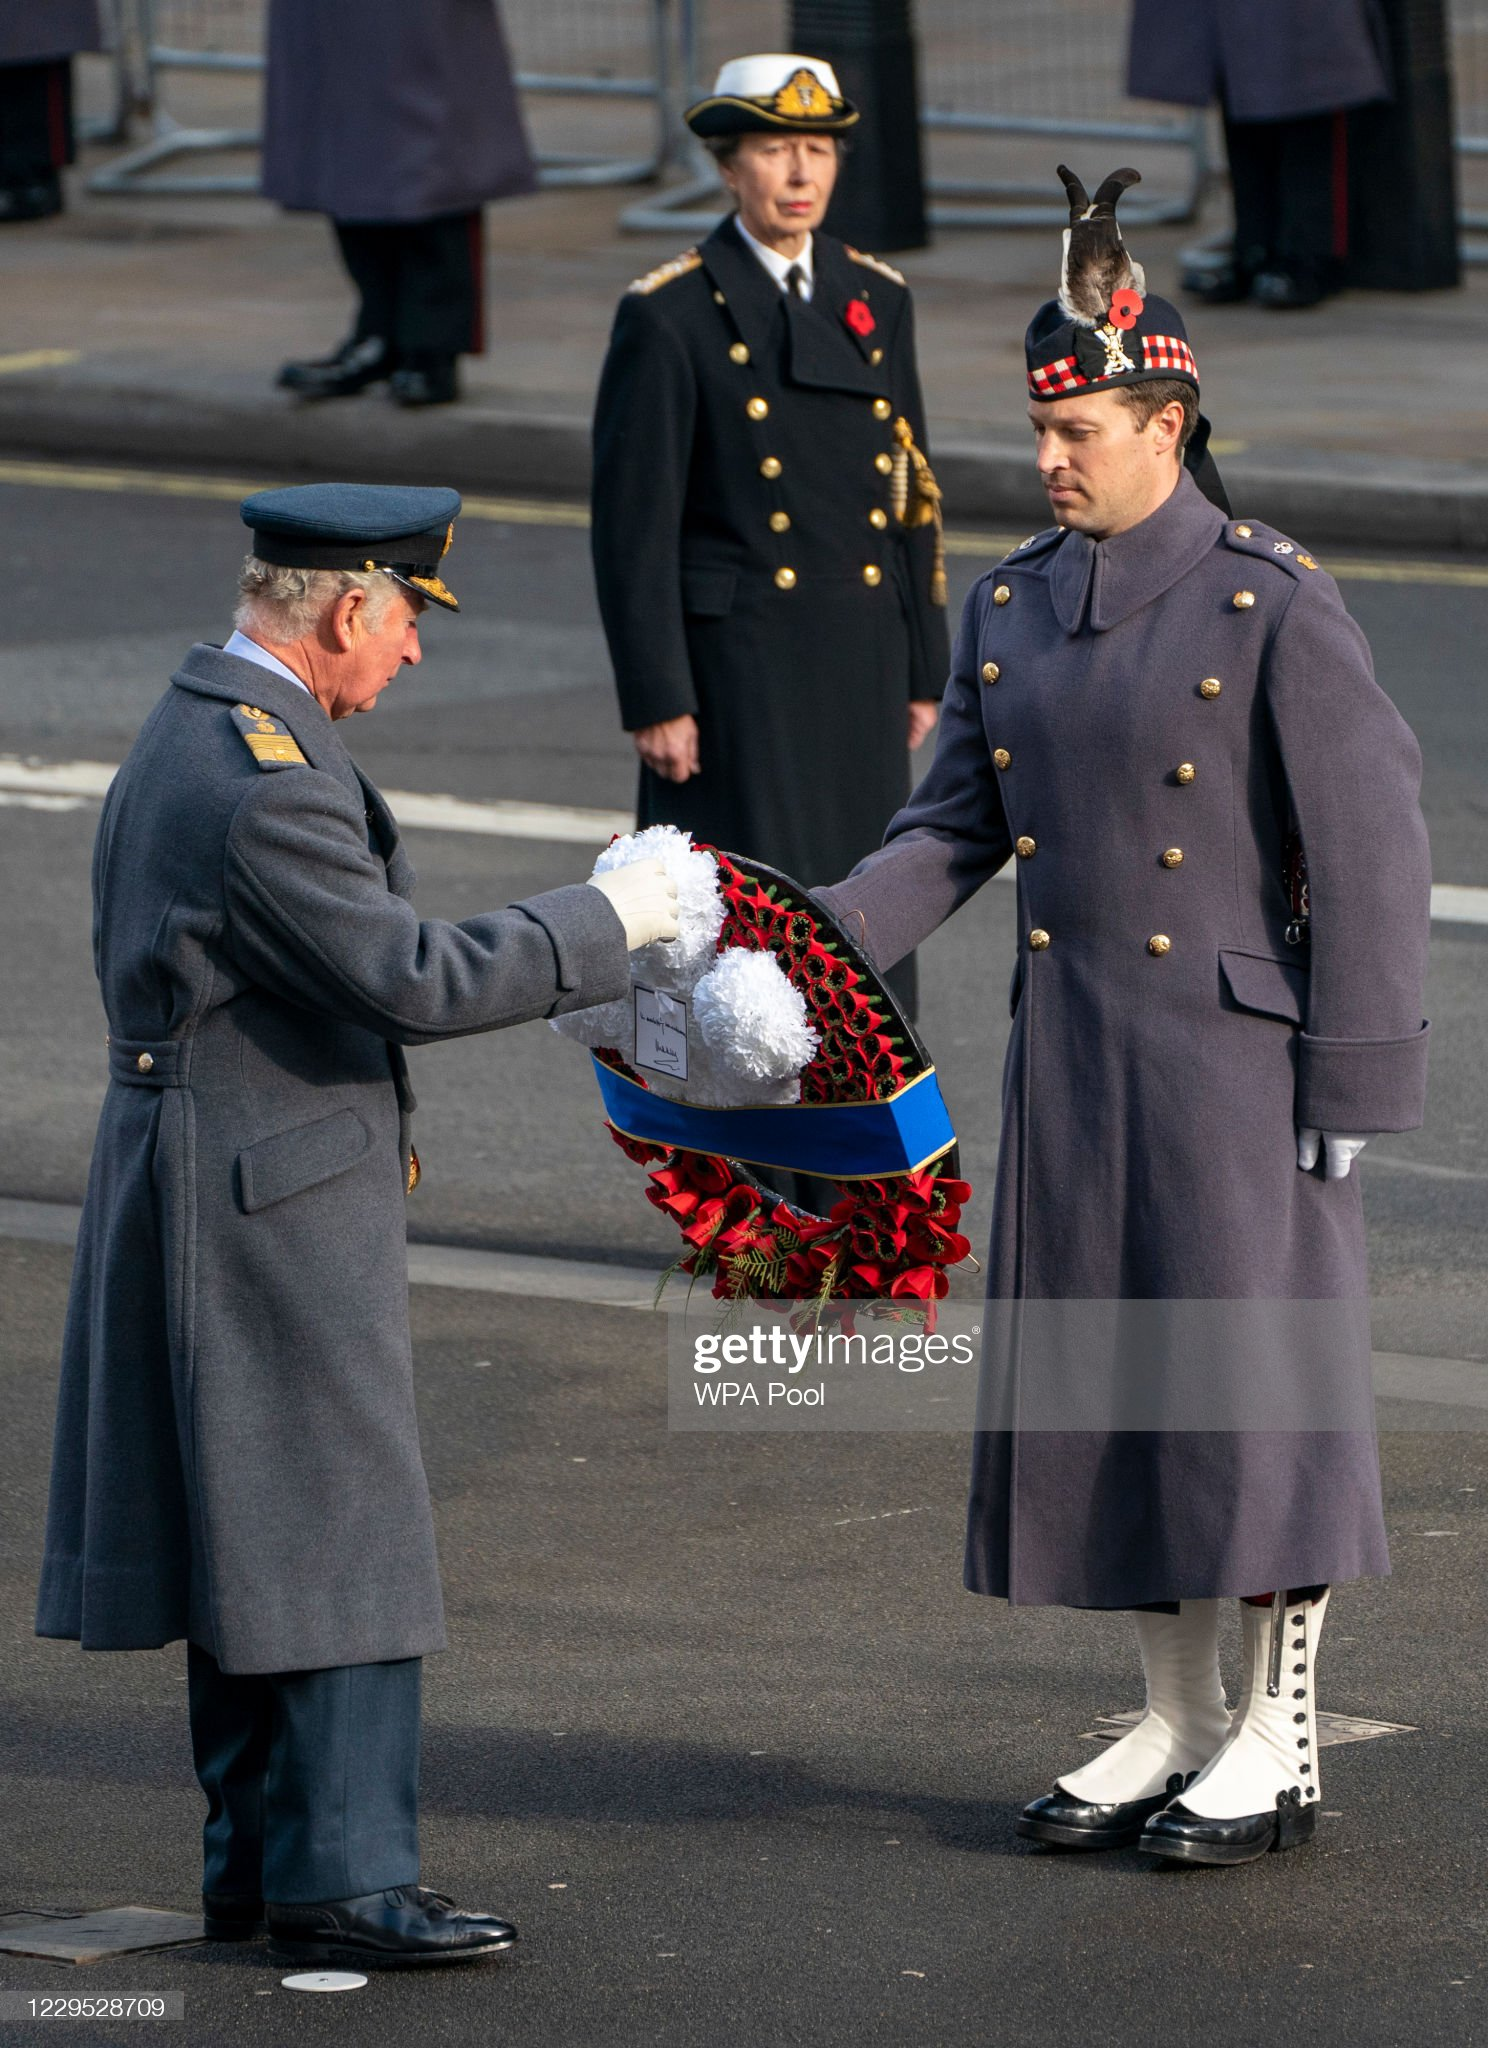 https://media.gettyimages.com/photos/britains-prince-charles-prince-of-wales-attends-the-national-service-picture-id1229528709?s=2048x2048